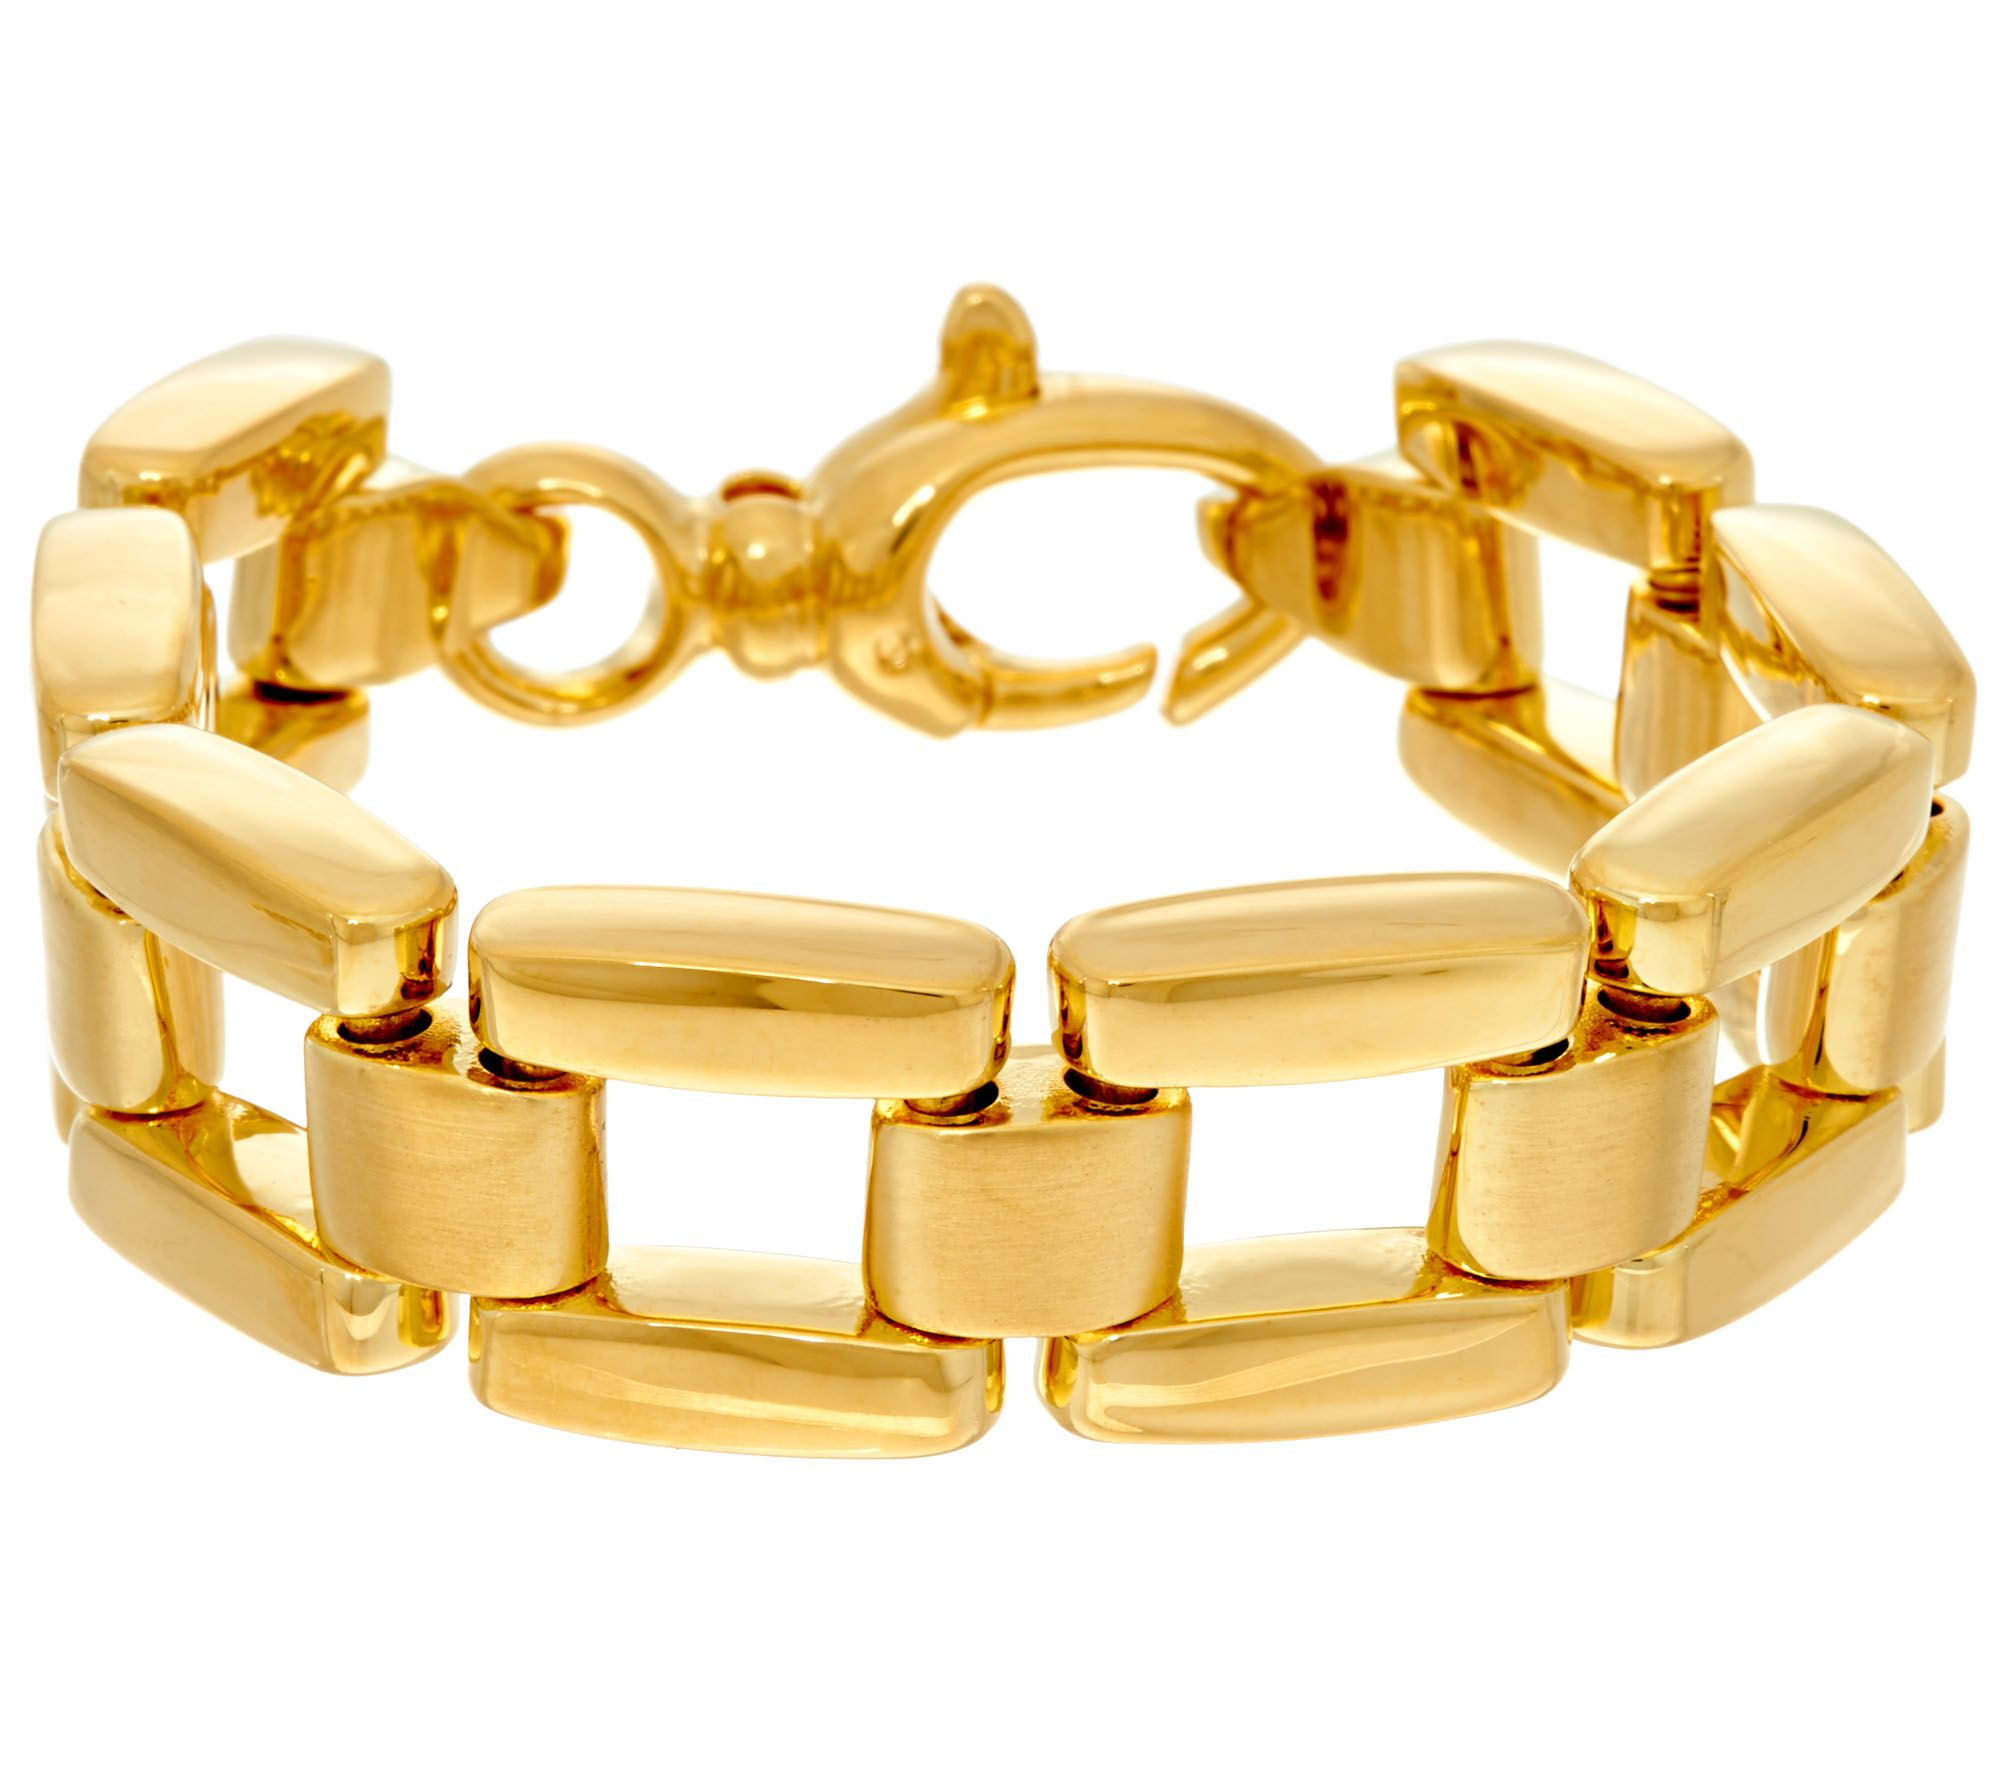 Oro Nuovo Small Panther Link Reversible Bracelet, 14k  J334617